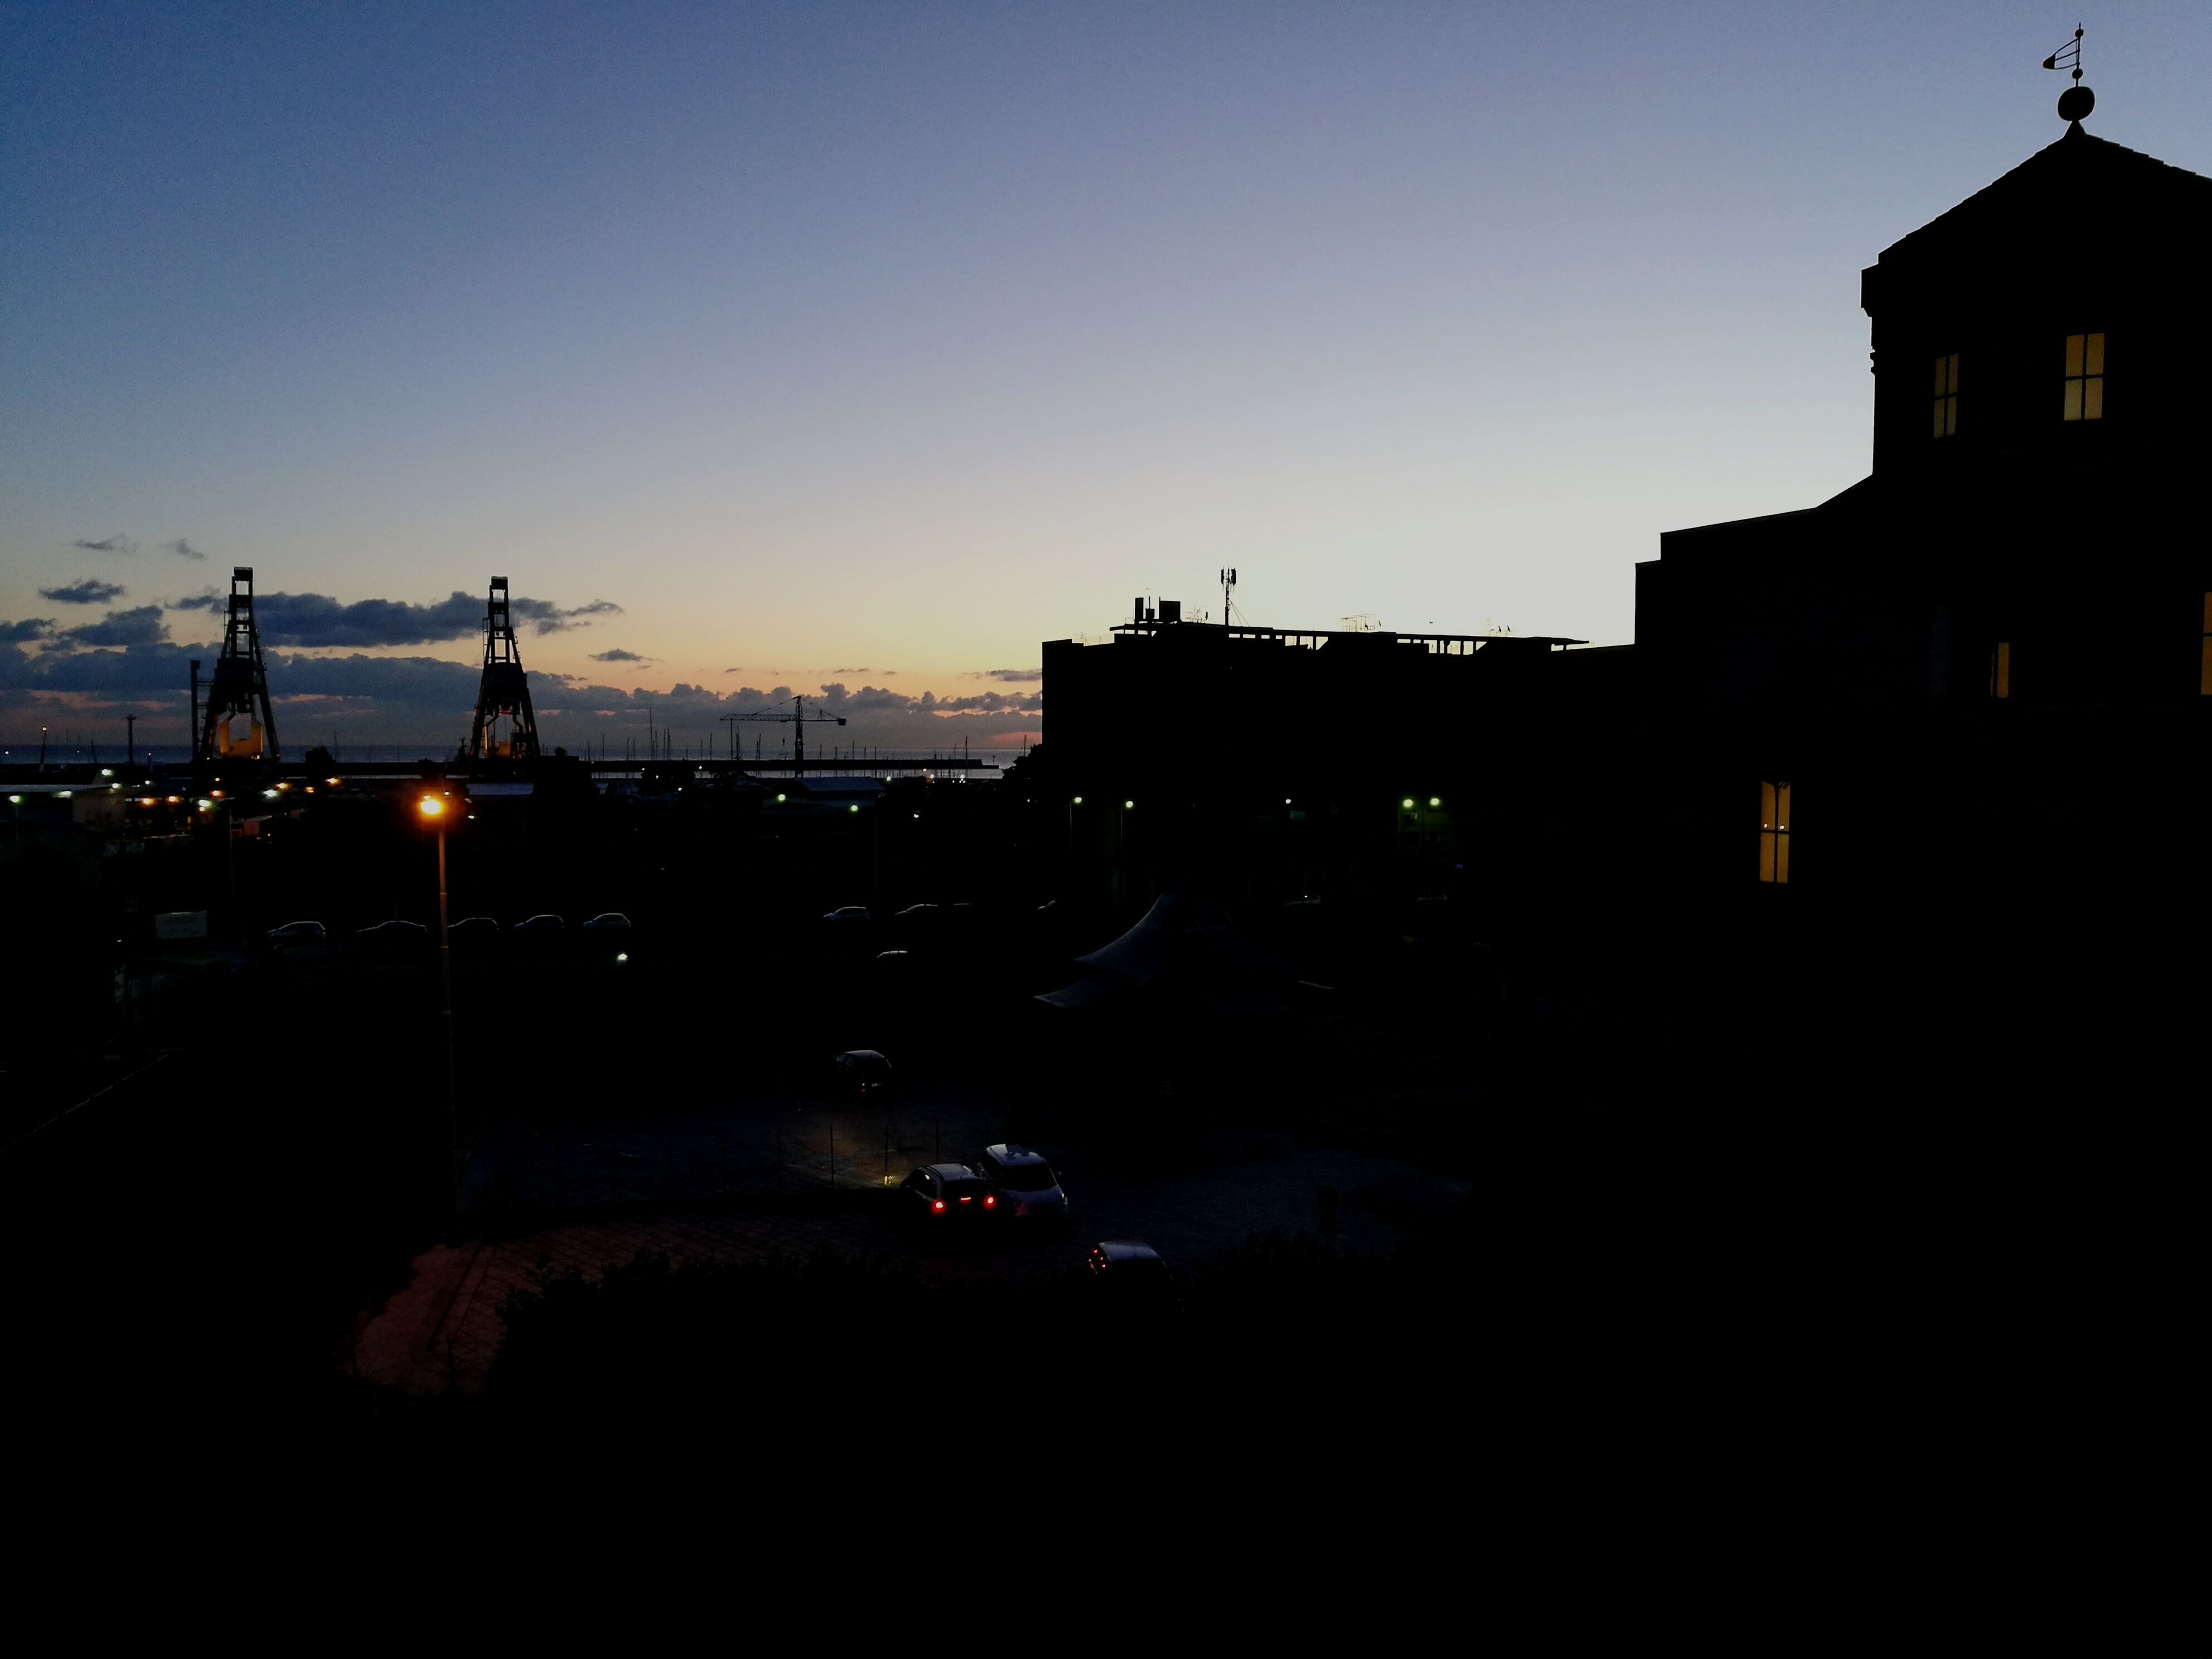 architecture, built structure, building exterior, sky, transportation, city, sunset, outdoors, no people, bridge - man made structure, illuminated, nature, night